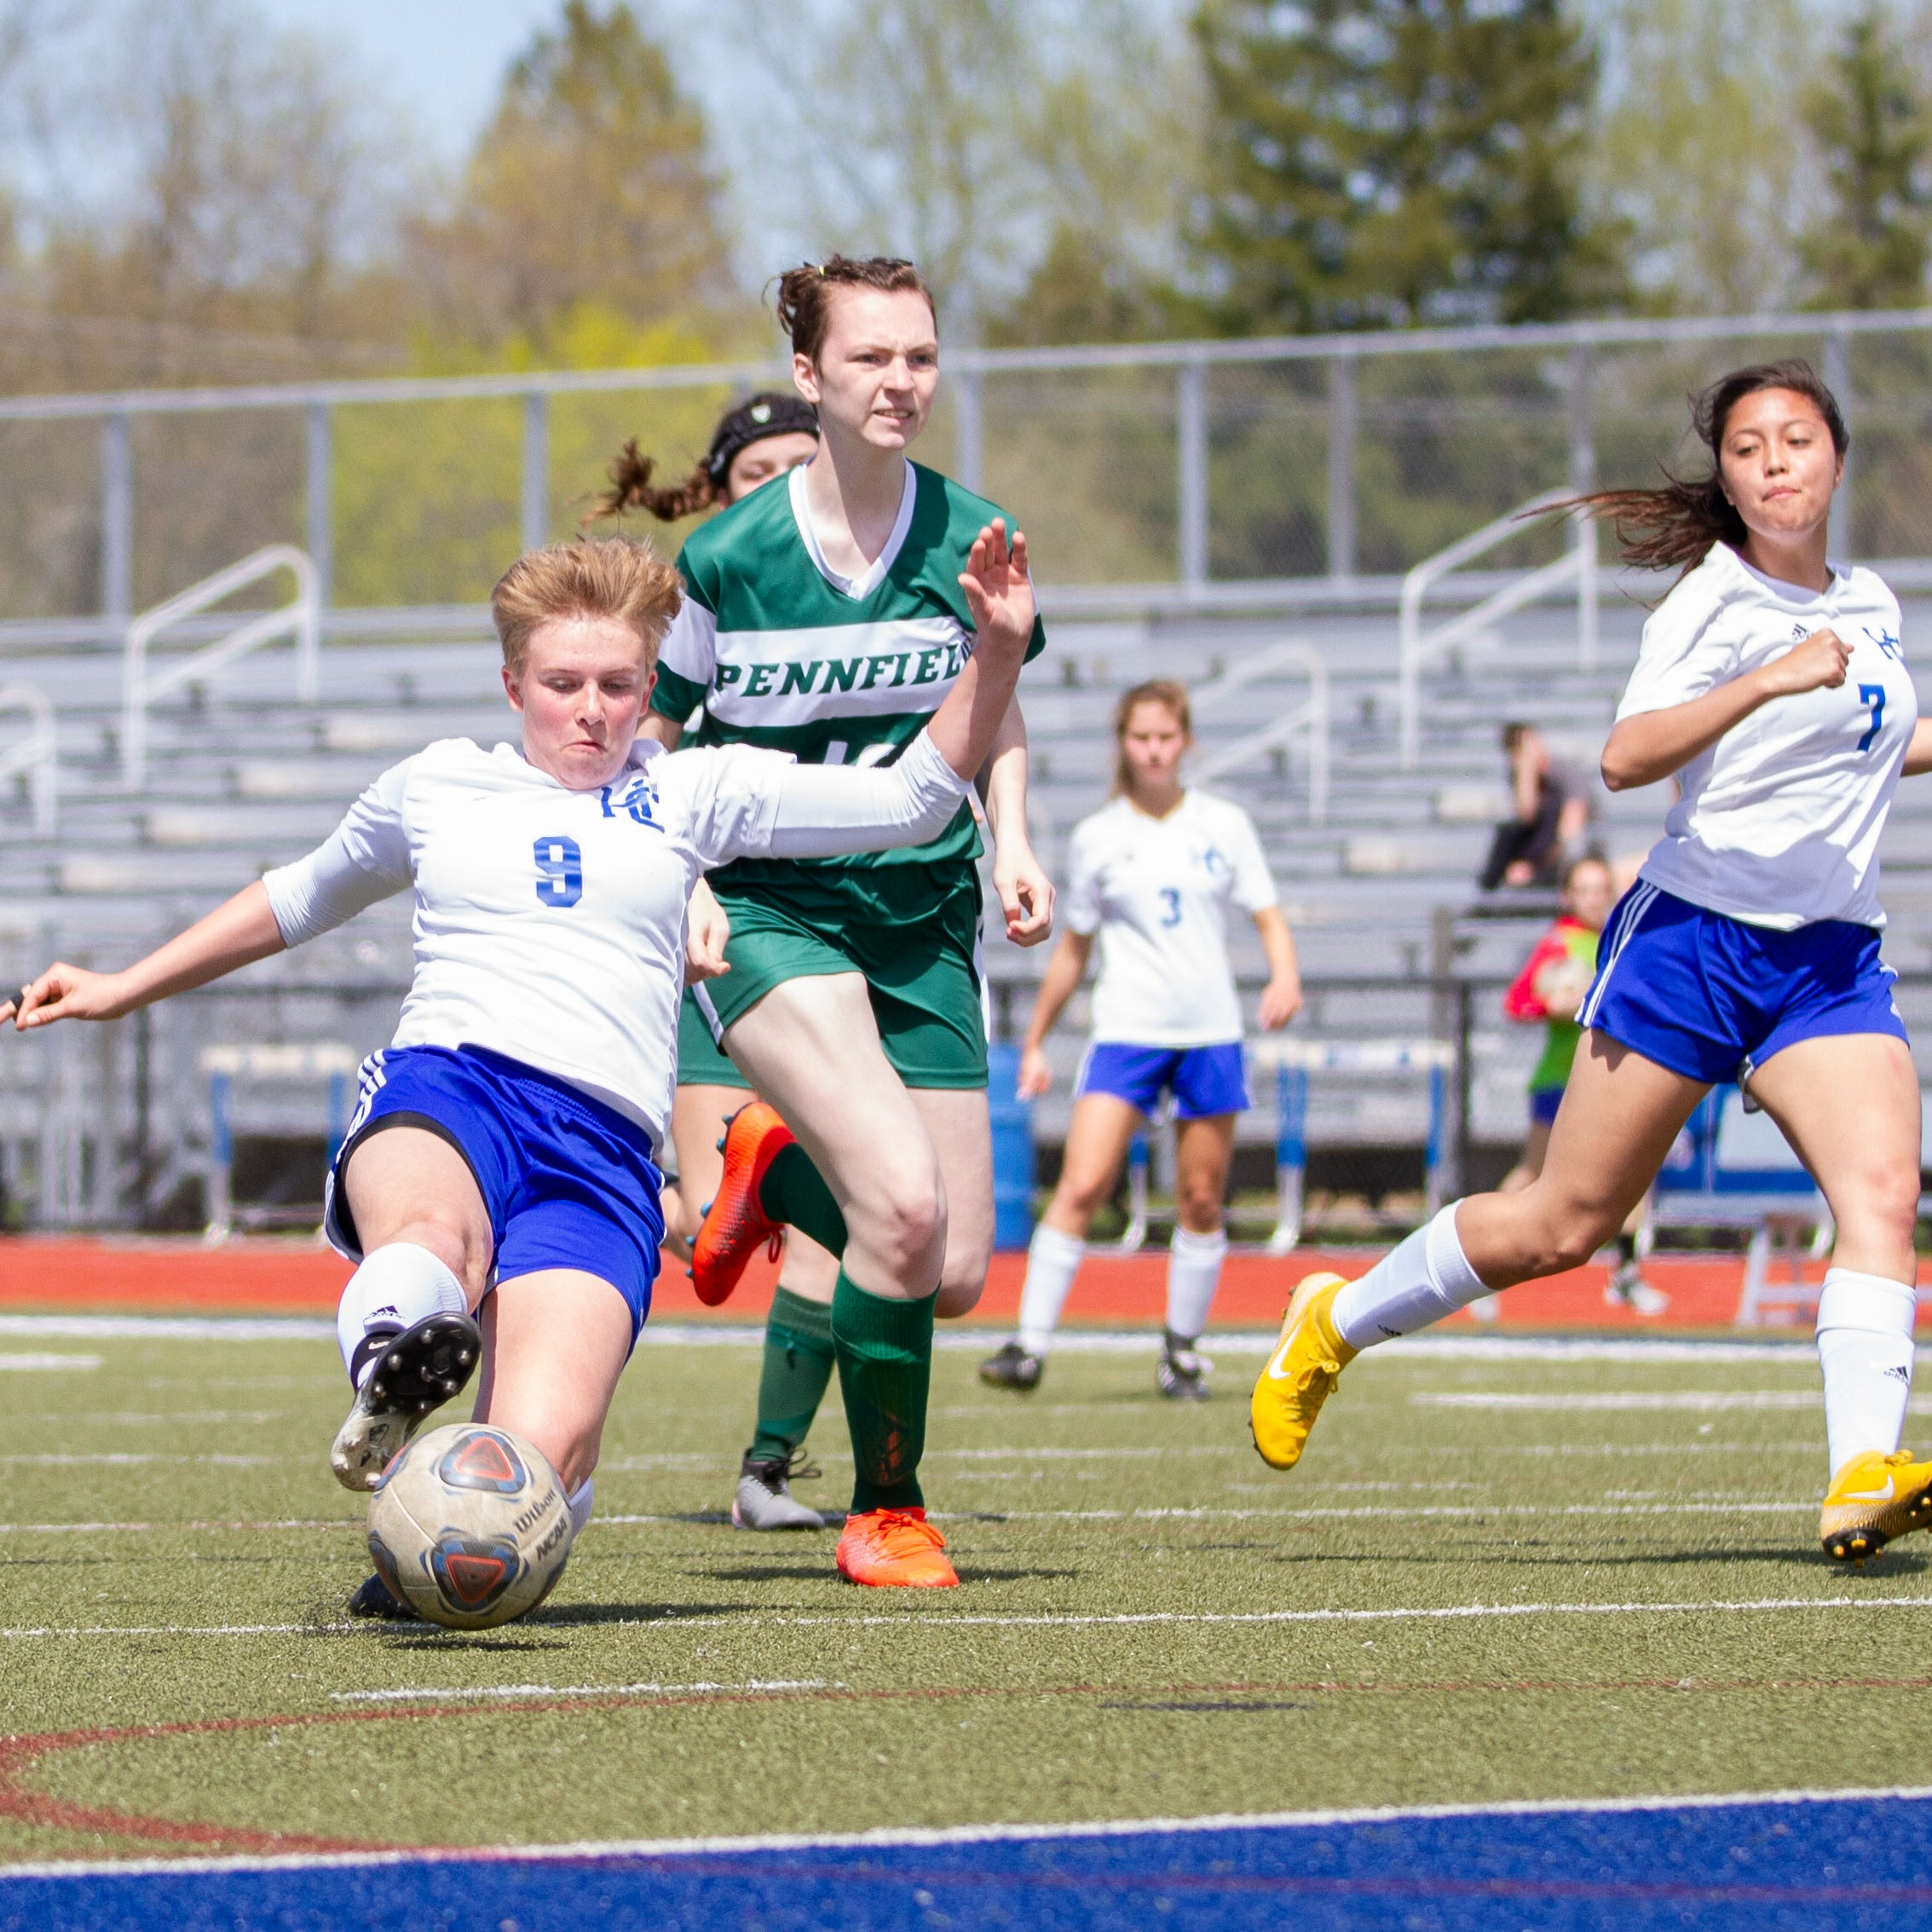 Harper Creek gets revenge with win over Pennfield in All-City soccer final